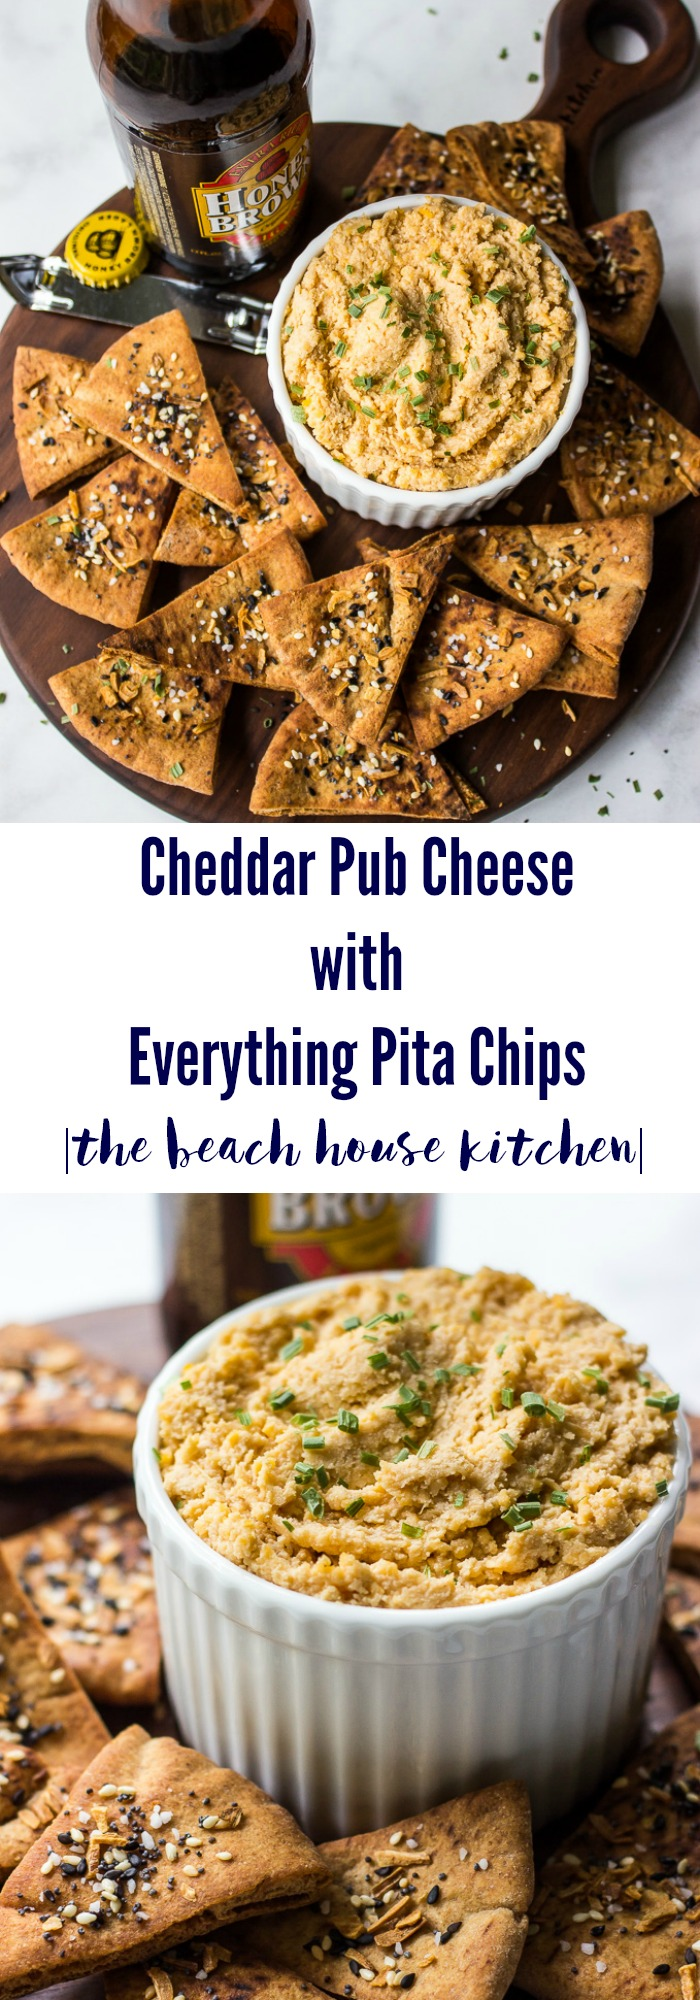 Cheddar Pub Cheese with Everything Pita Chips